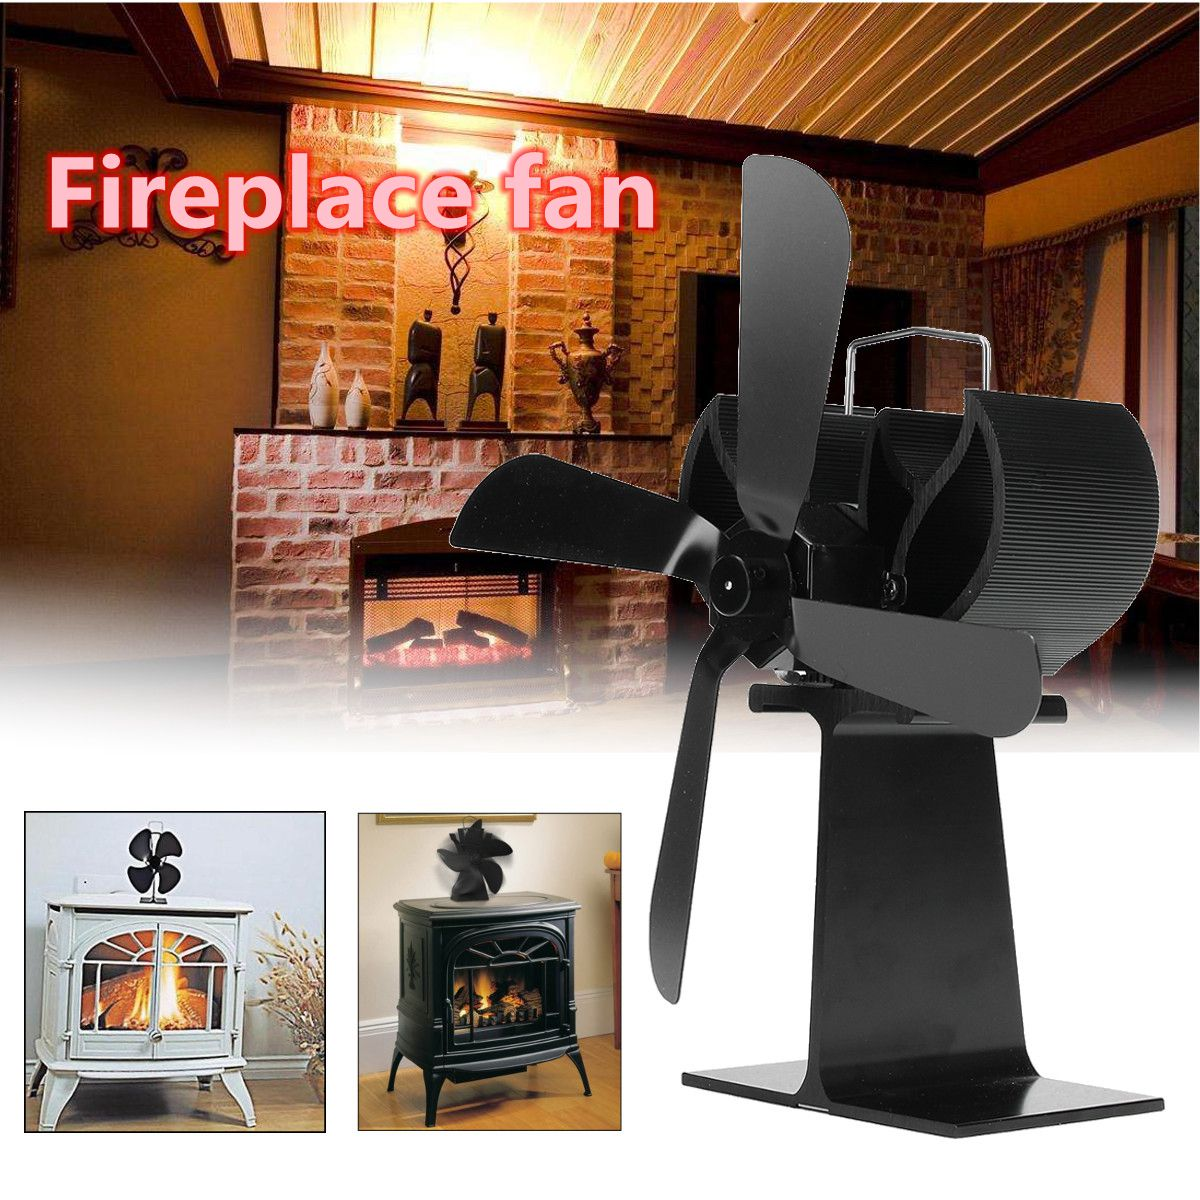 Quiet Stove Fireplace Fan Heat Powered 4 Blade For Wood Log Burner Eco Top Gift for Efficient Heat Distribution hot new wood stove eco fan heat powered 4 blade blade fireplace blower fan for efficient heat distribution